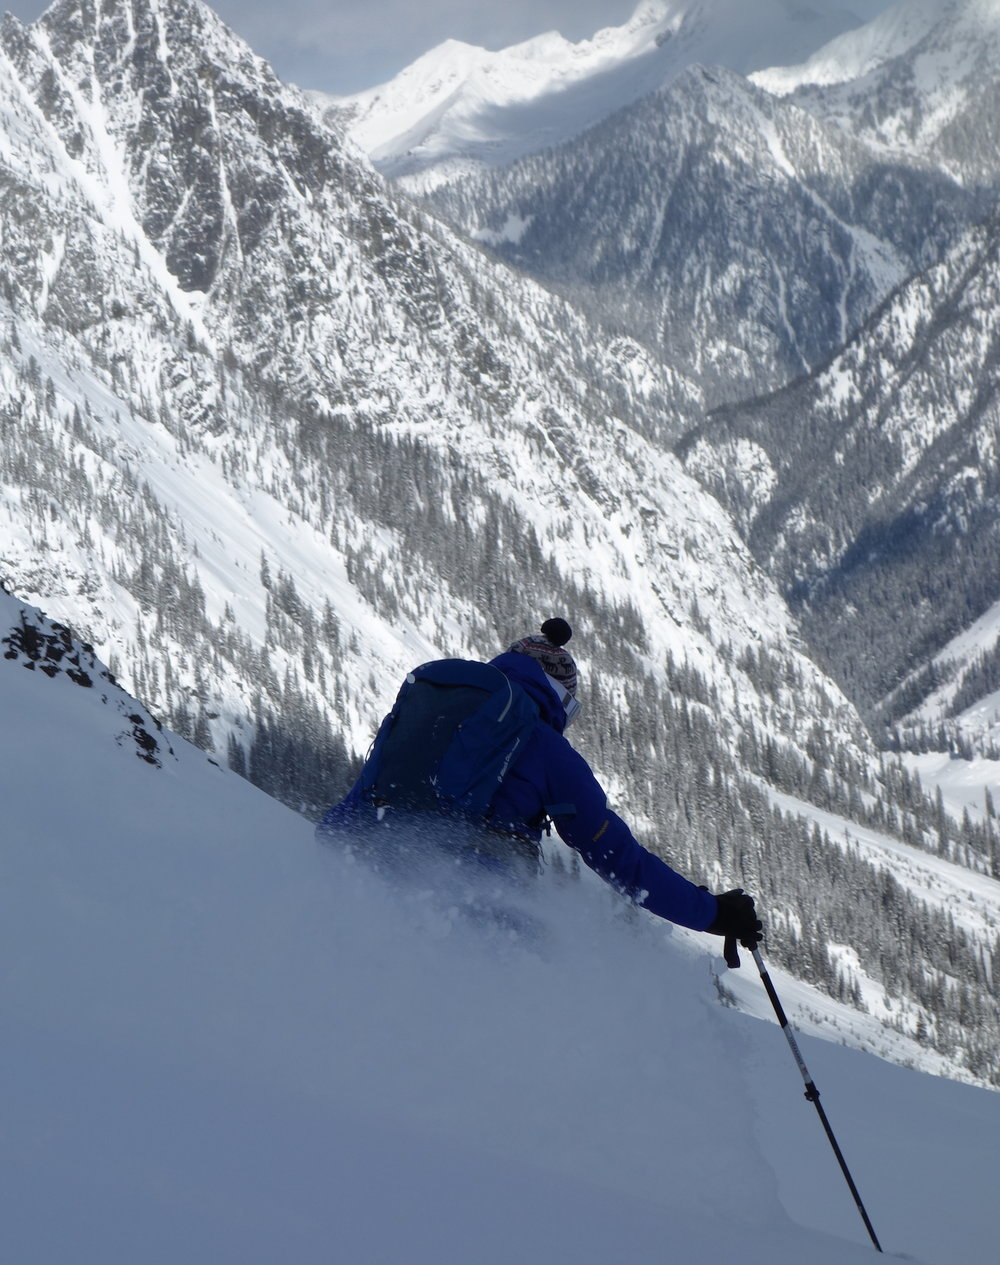 powder-skiing-at-boulder-hut.jpg